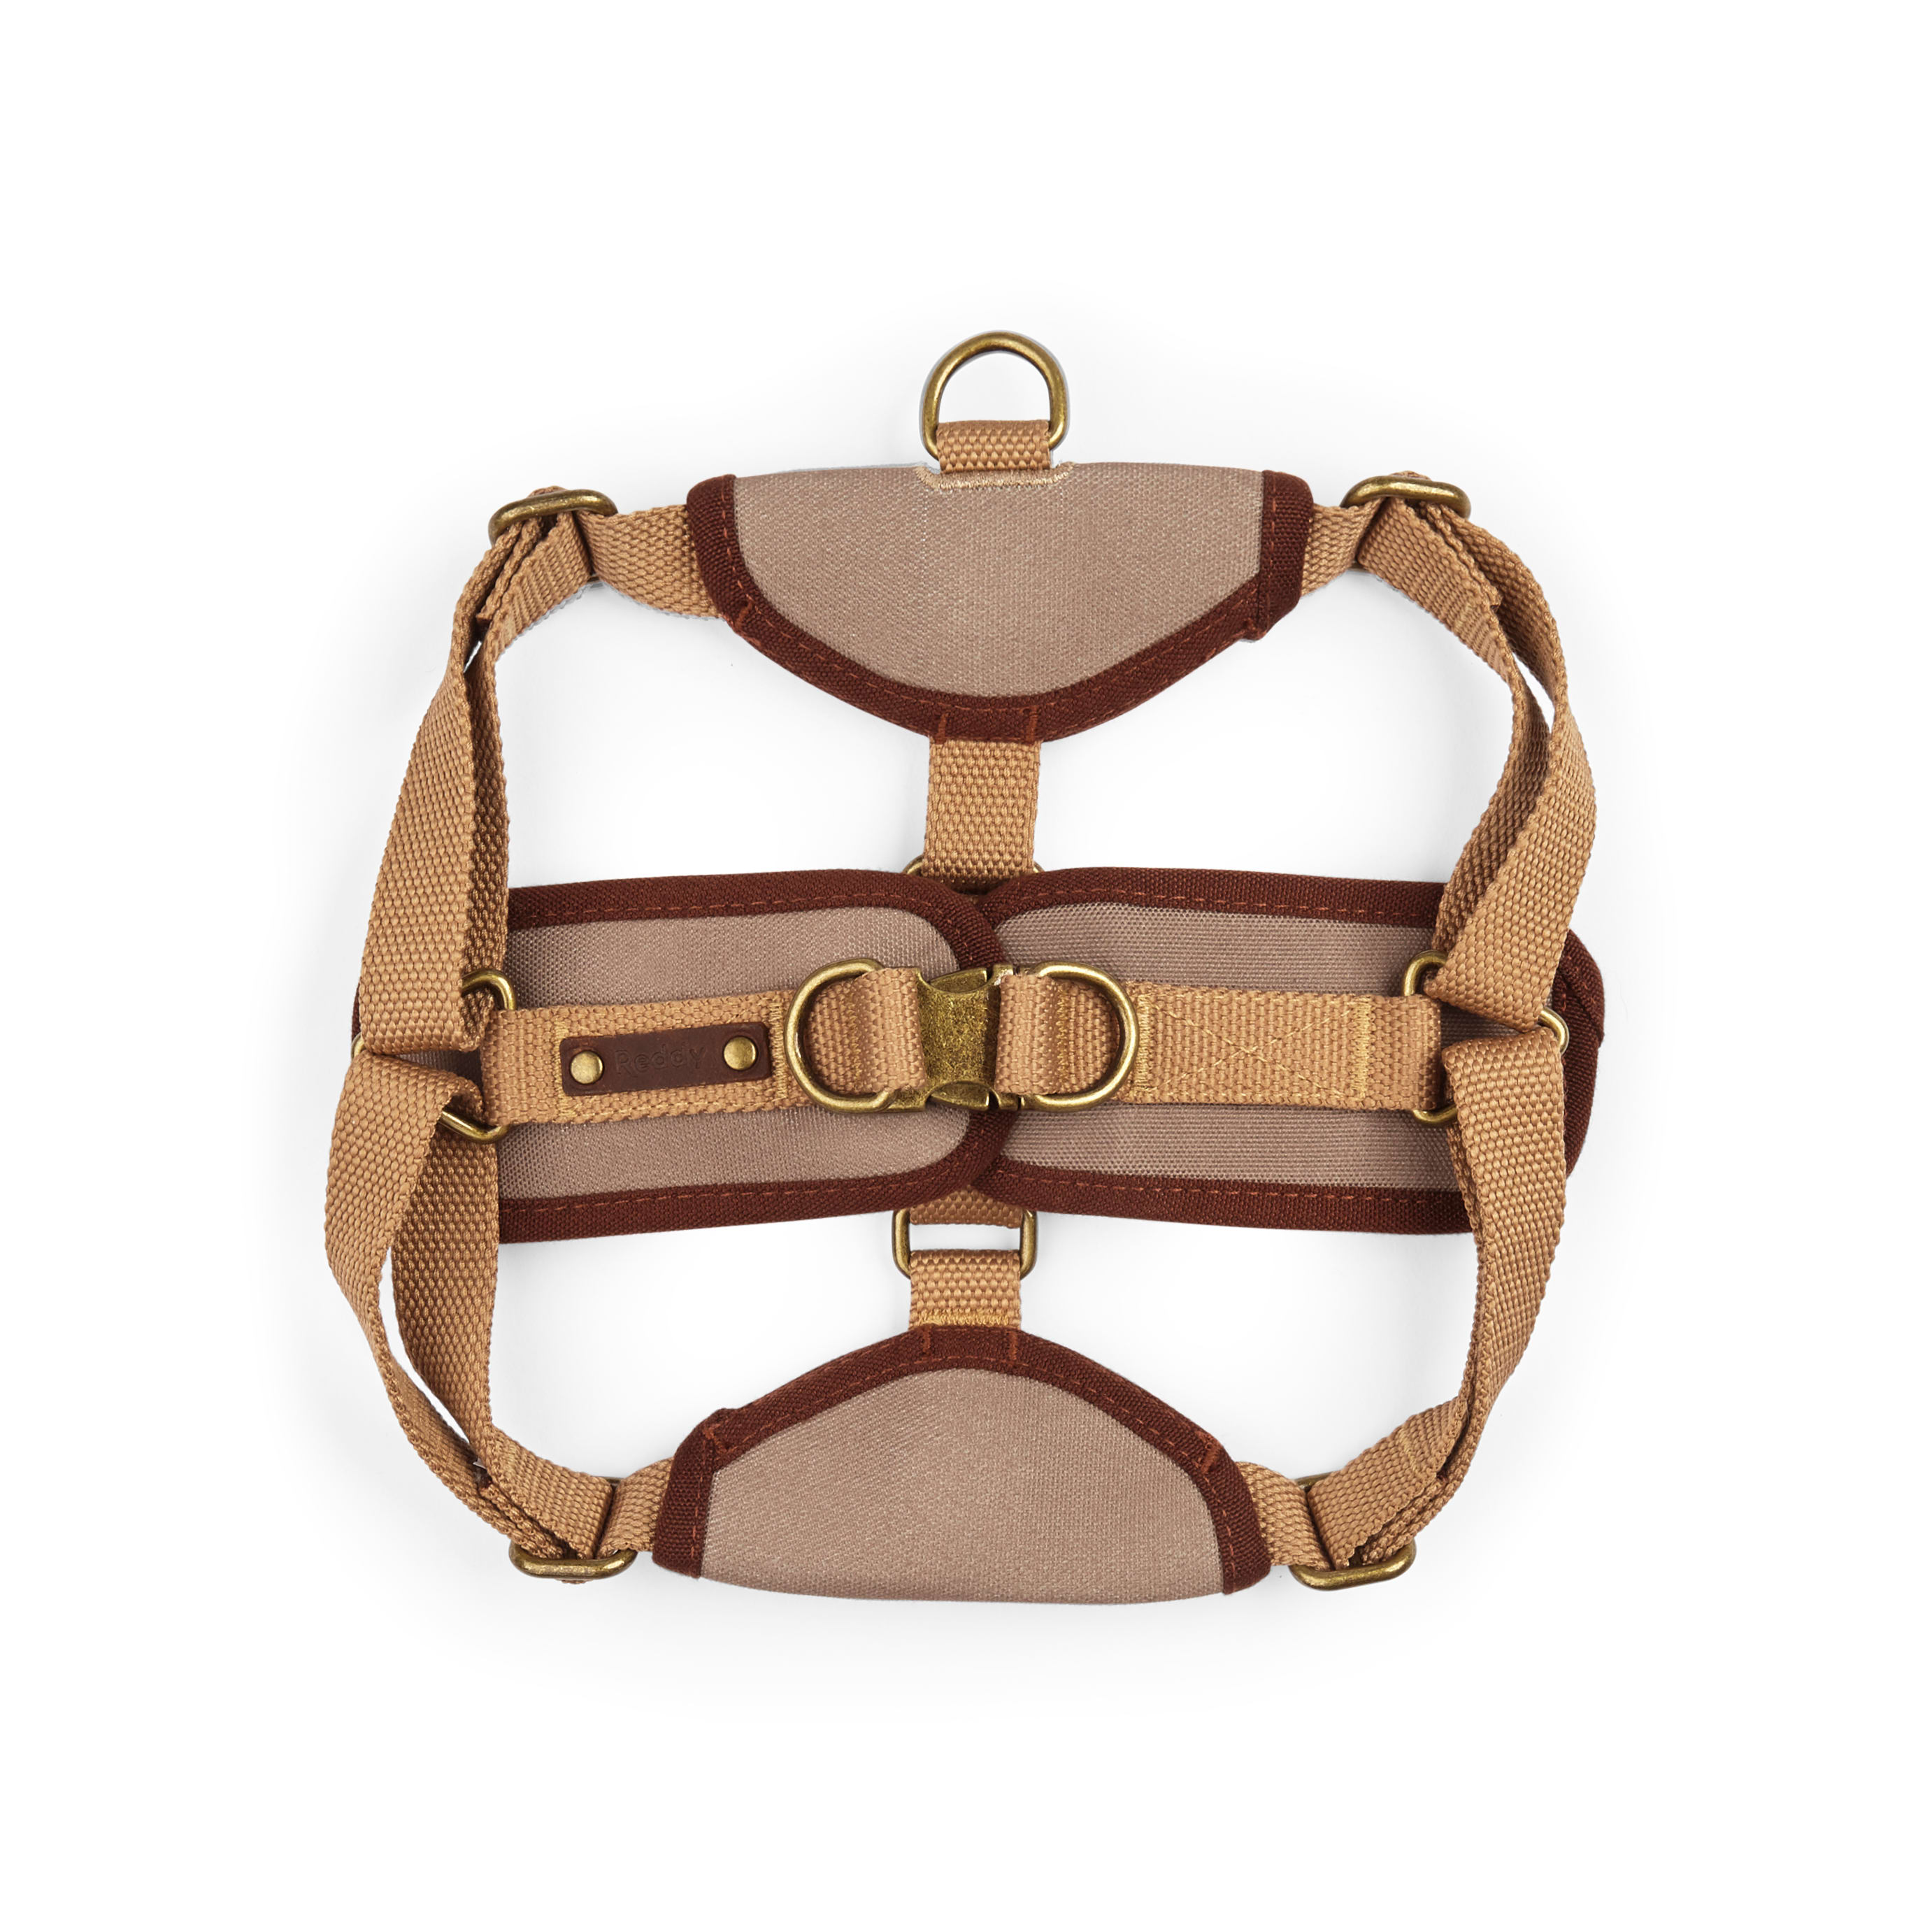 Leather Show Number Harness Adult Small//Medium Brown